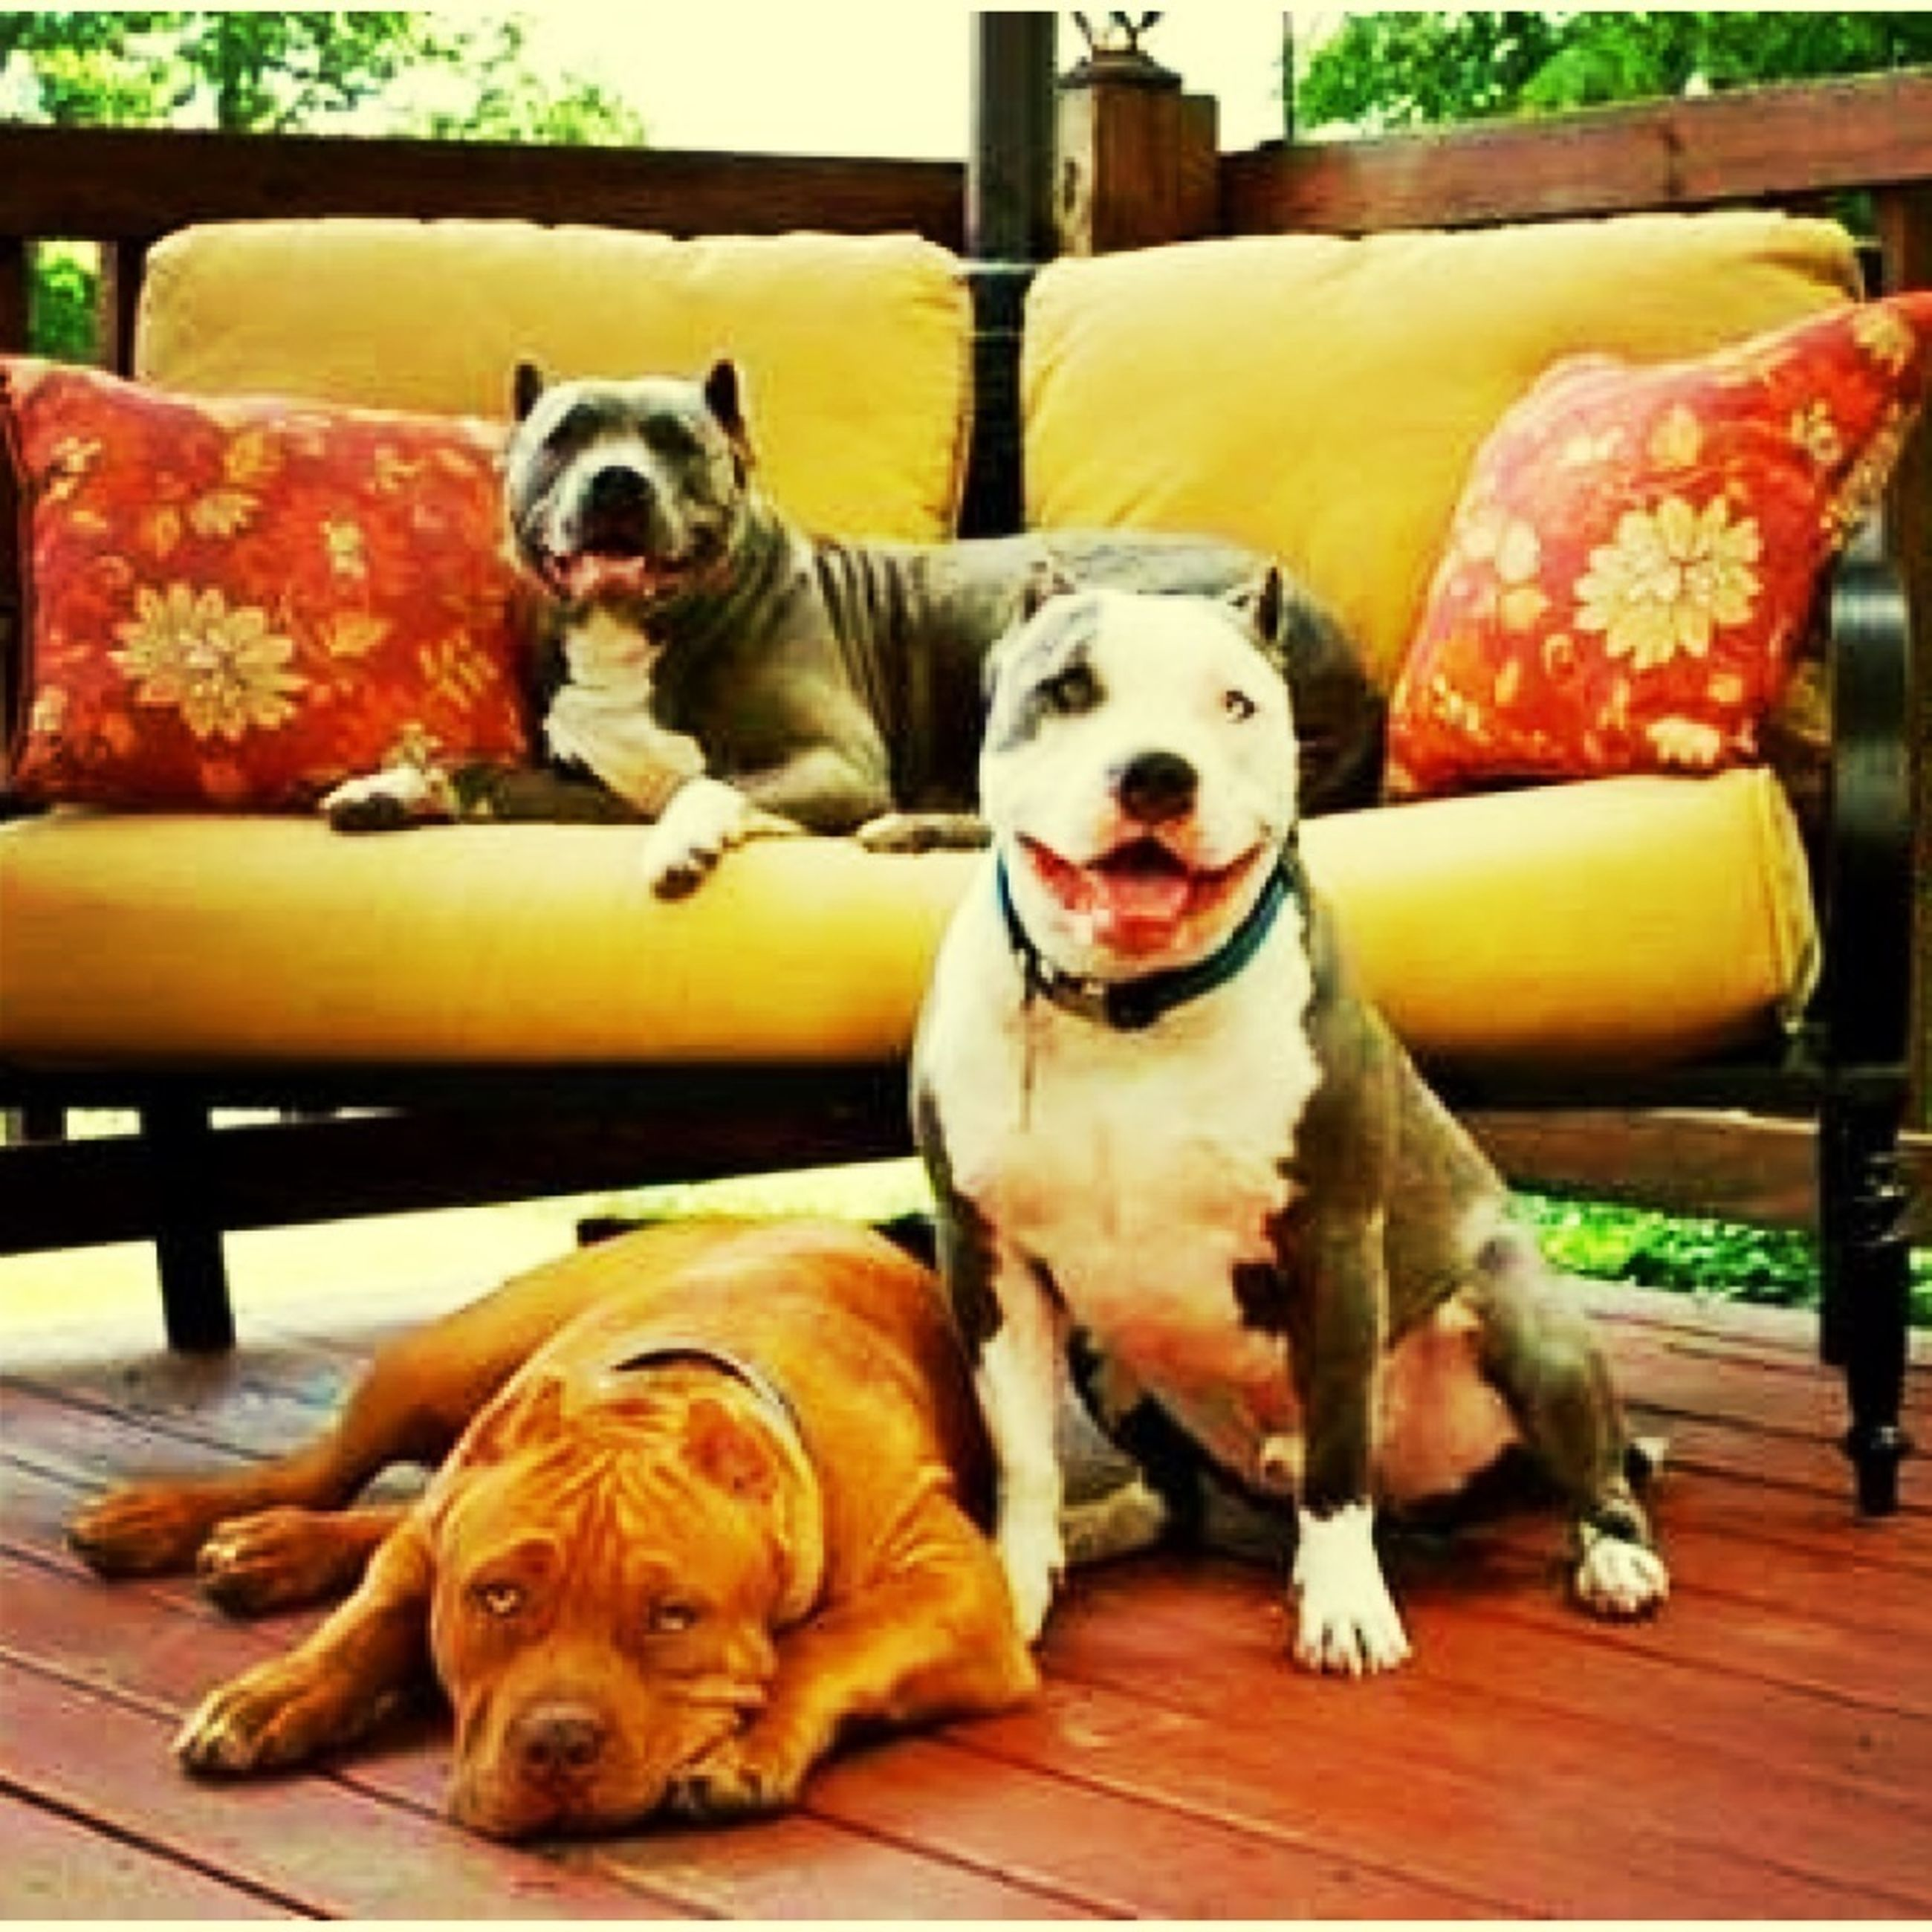 pets, domestic animals, mammal, animal themes, dog, indoors, one animal, relaxation, portrait, looking at camera, resting, two animals, sitting, lying down, table, chair, sofa, no people, home interior, relaxing